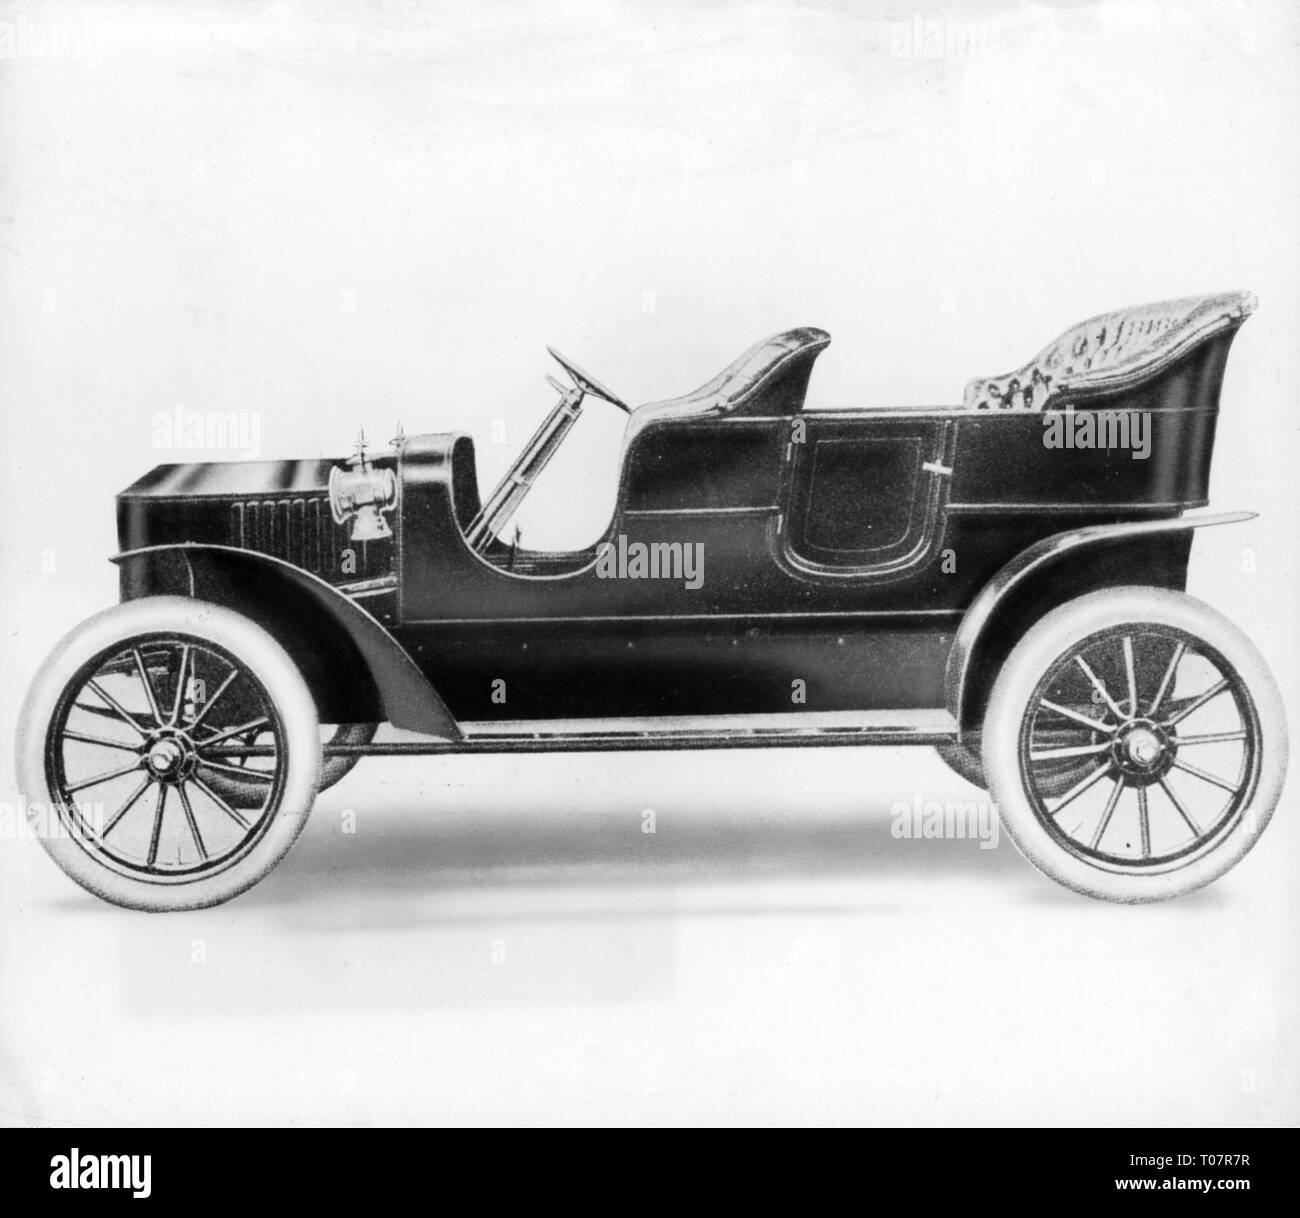 transport / transportation, car, vehicle variants, Stanley Steamer Model K Semi-Race, 1908, Additional-Rights-Clearance-Info-Not-Available Stock Photo